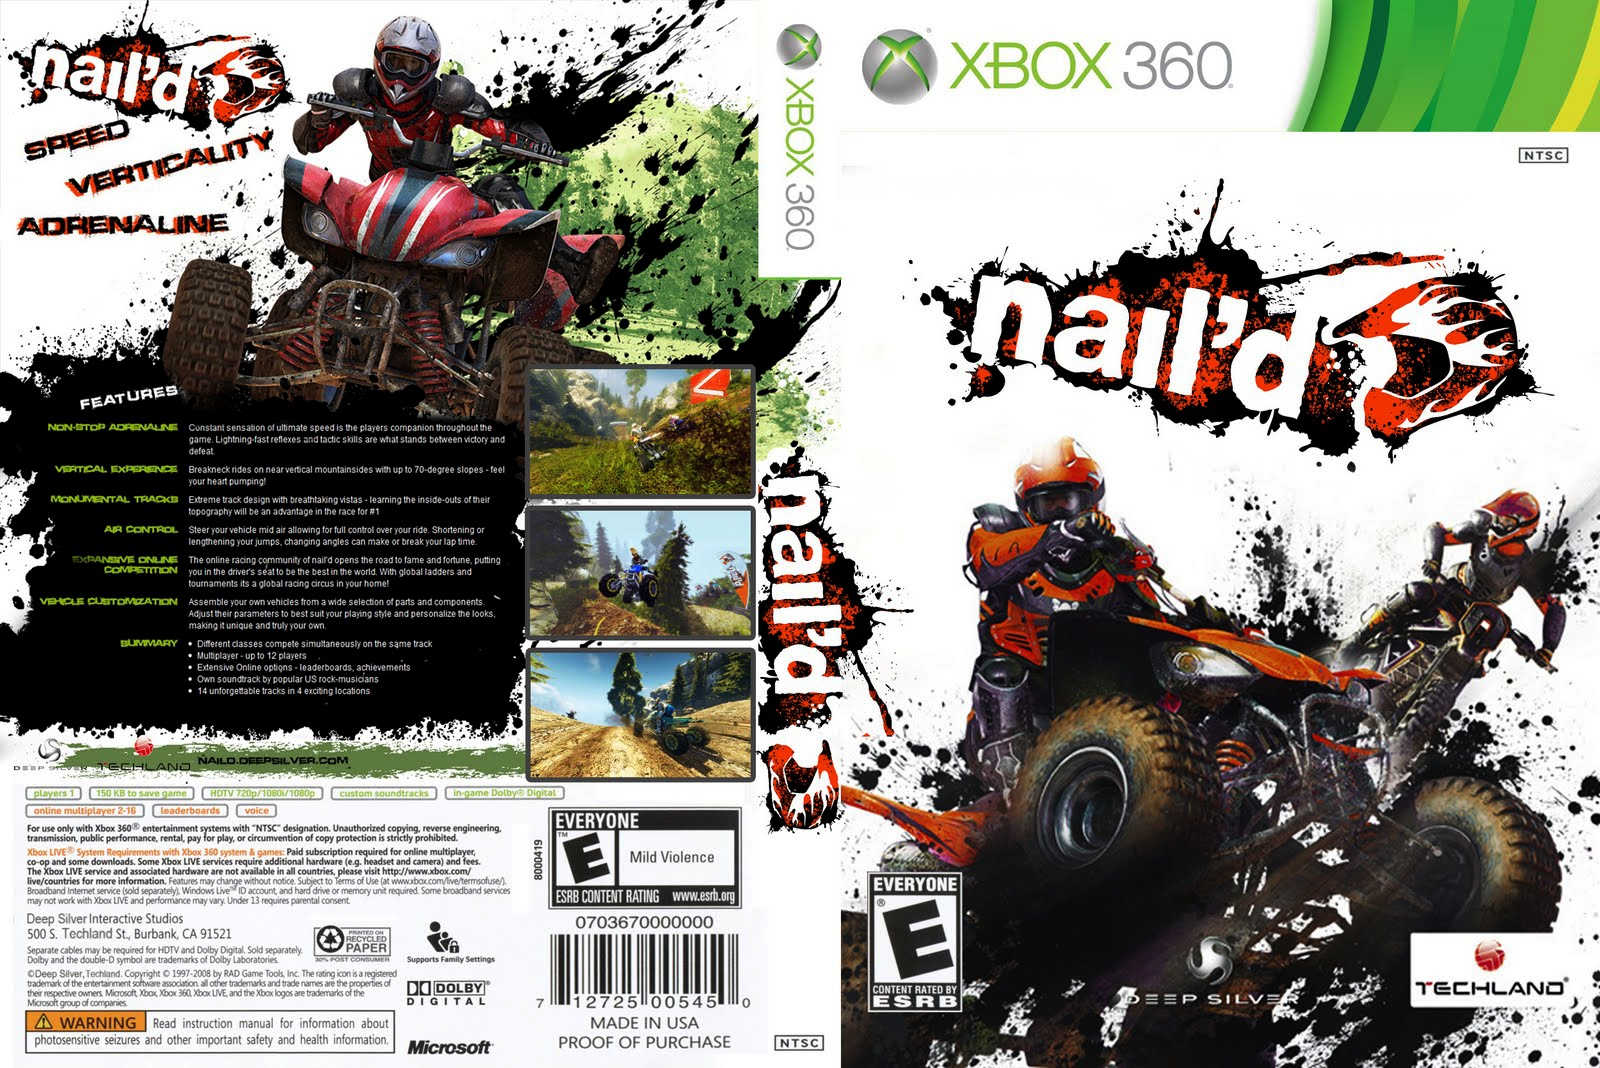 nail'd - PC | PS3 | Xbox 360 - Gamescom 2010 official video game ...